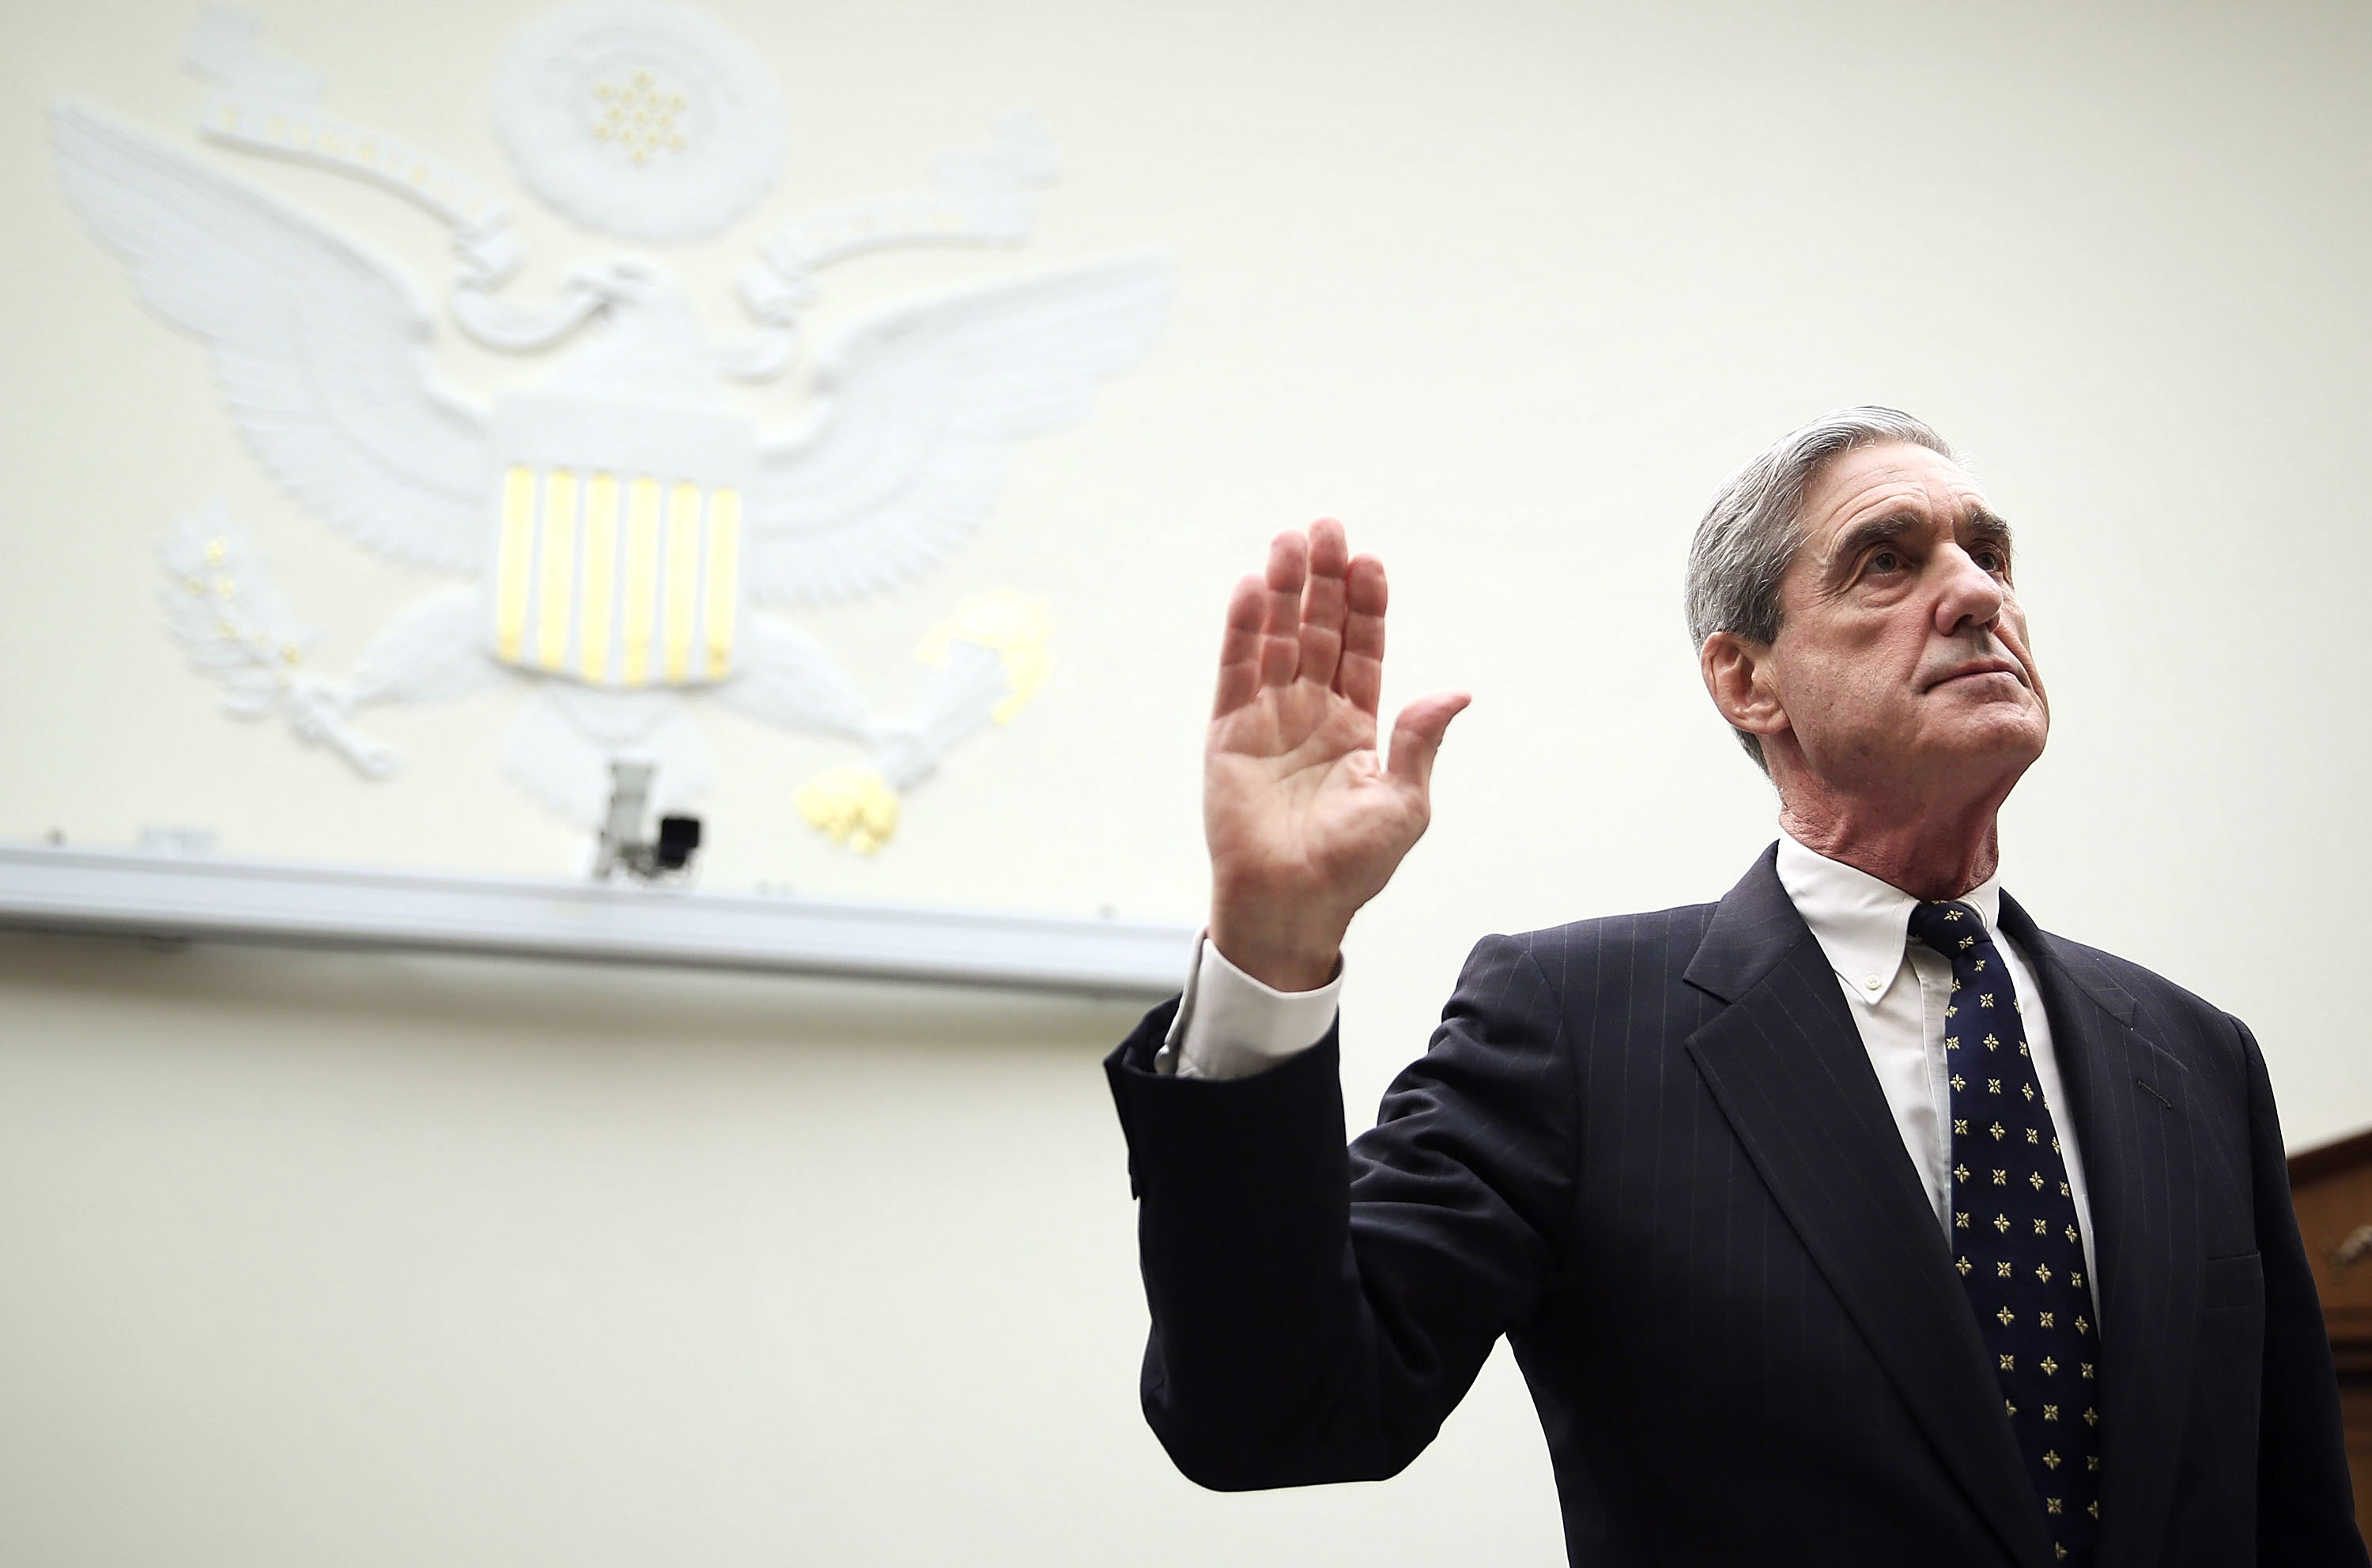 Here's what you need to know about the current grand jury investigation into Trump's ties to Russia